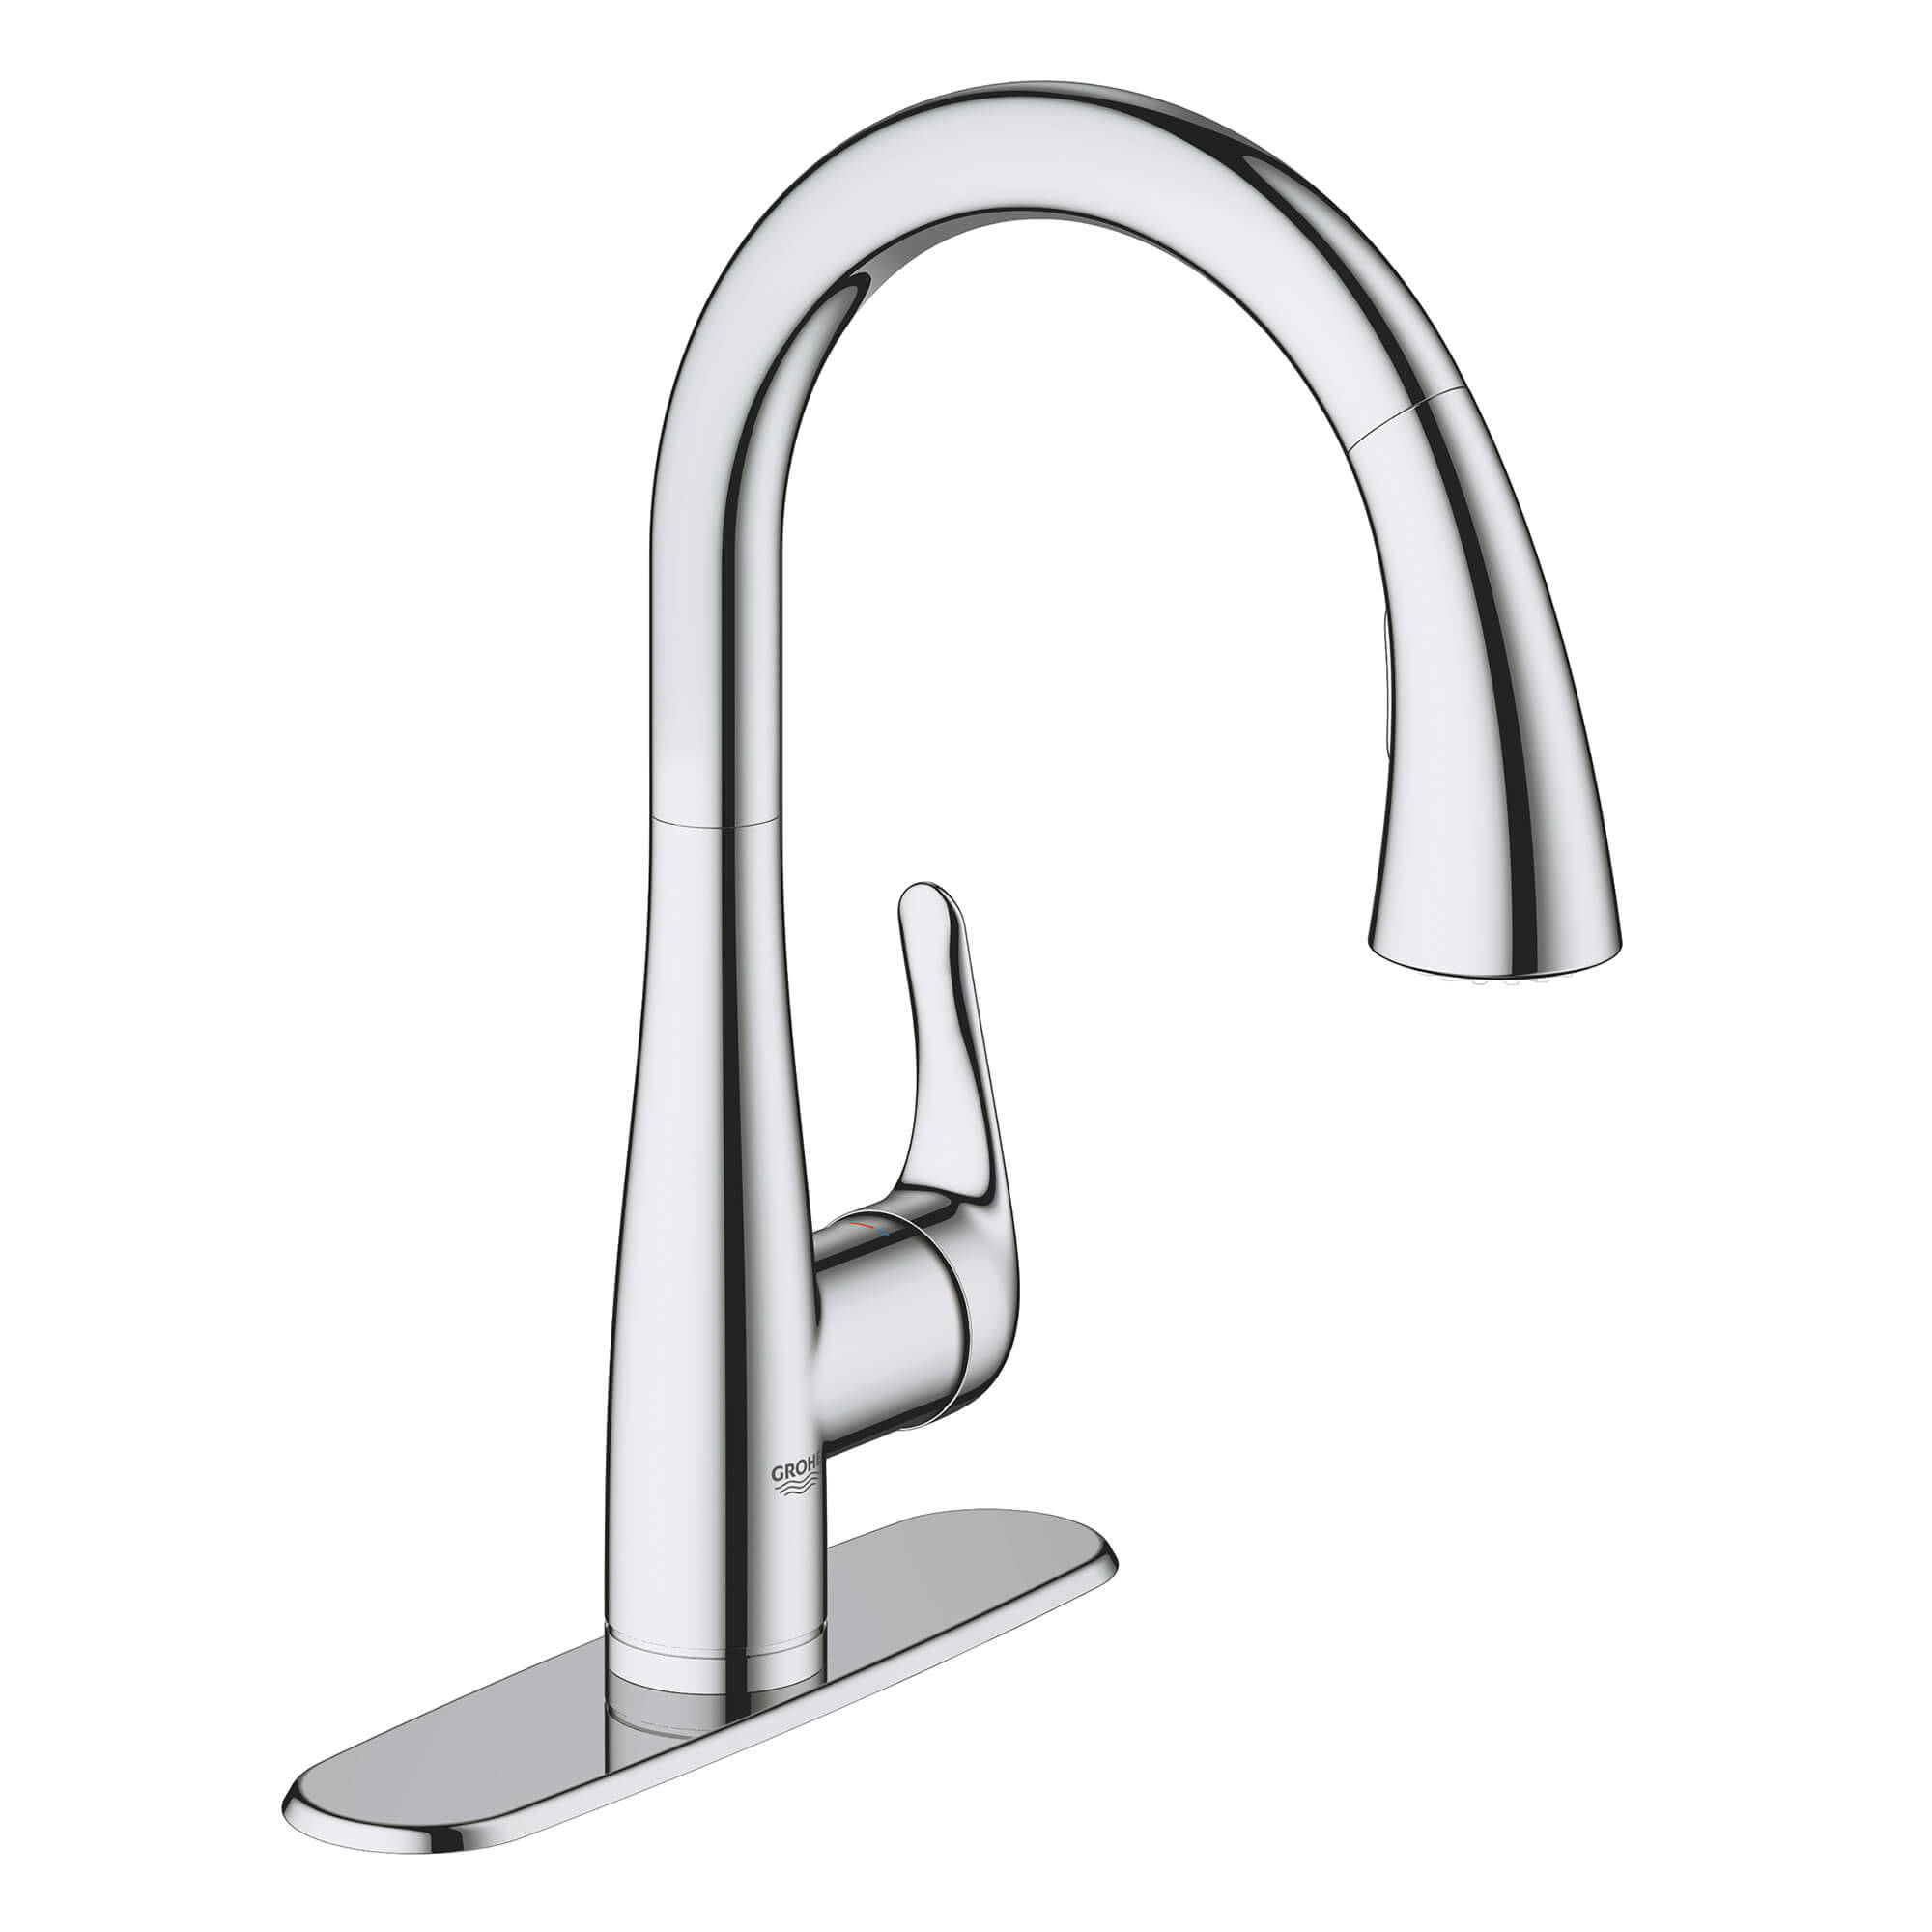 single handle pull down kitchen faucet dual spray 6 6 l min 1 75 gpm